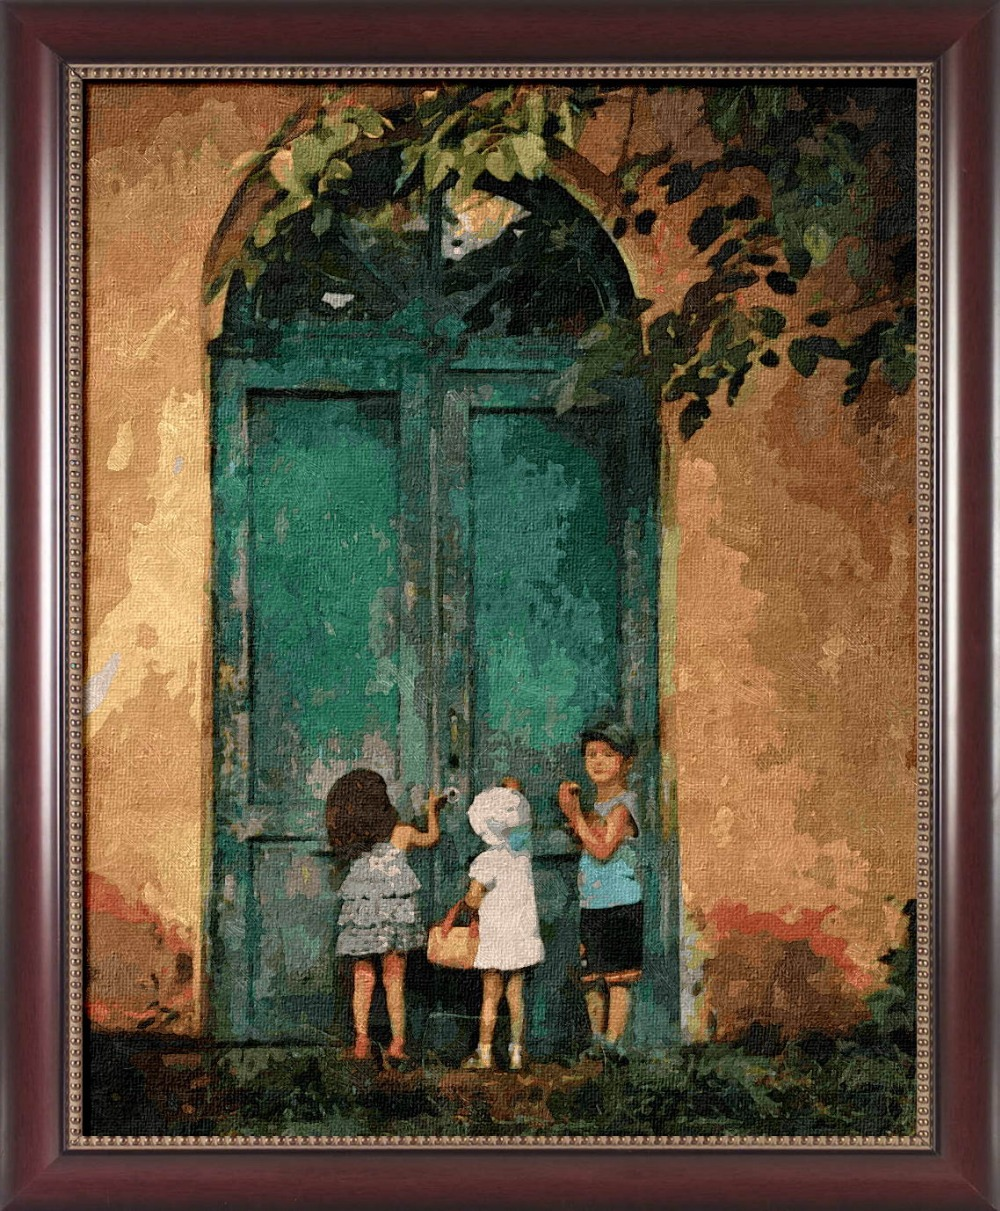 Unframed painting by number paint by numbers for home decor frame picture oil painting canvas painting 4050 Knock on the door(China (Mainland))